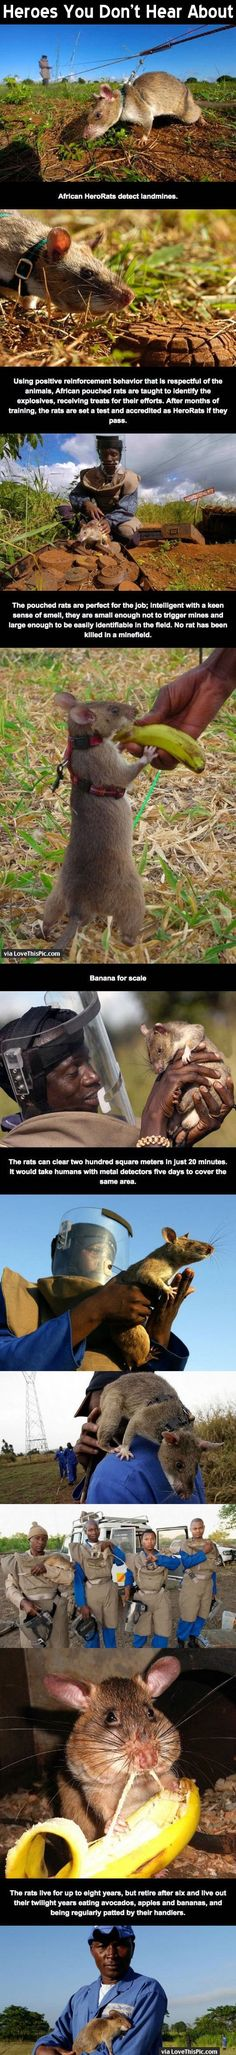 Heroes You Don't Hear About animals amazing animal interesting rats